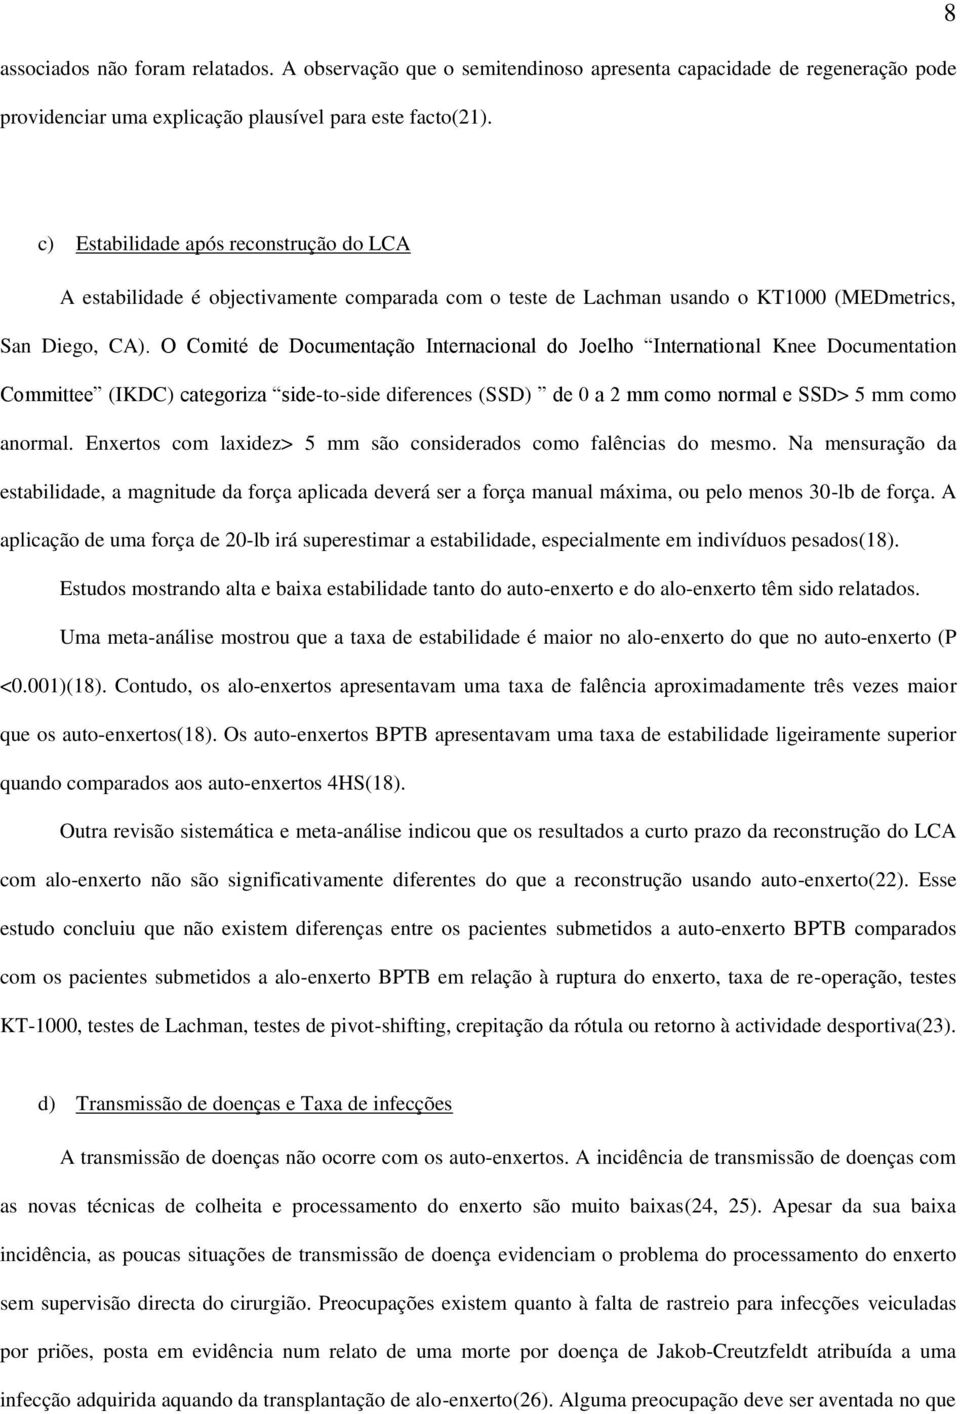 O Comité de Documentação Internacional do Joelho International Knee Documentation Committee (IKDC) categoriza side-to-side diferences (SSD) de 0 a 2 mm como normal e SSD> 5 mm como anormal.